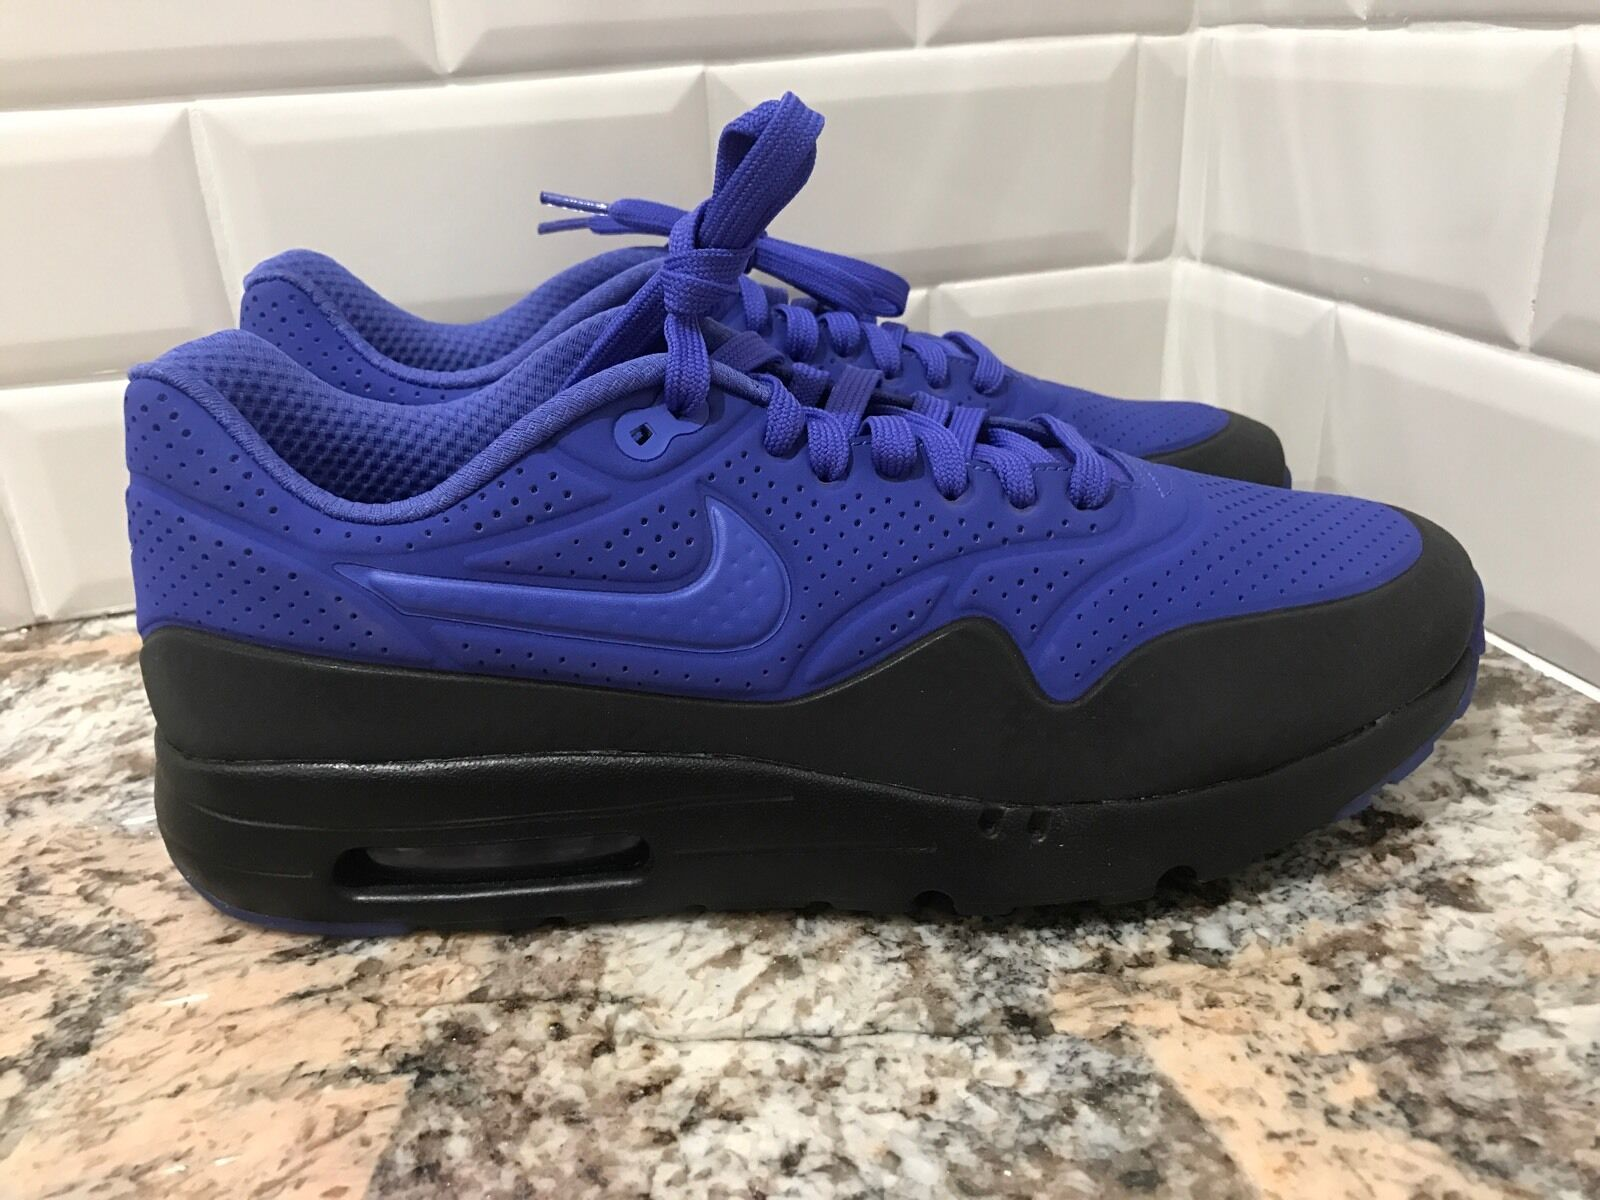 Nike Air Max 1 One Ultra Moire SZ 11 Persian Violet Black Purple 705297-500